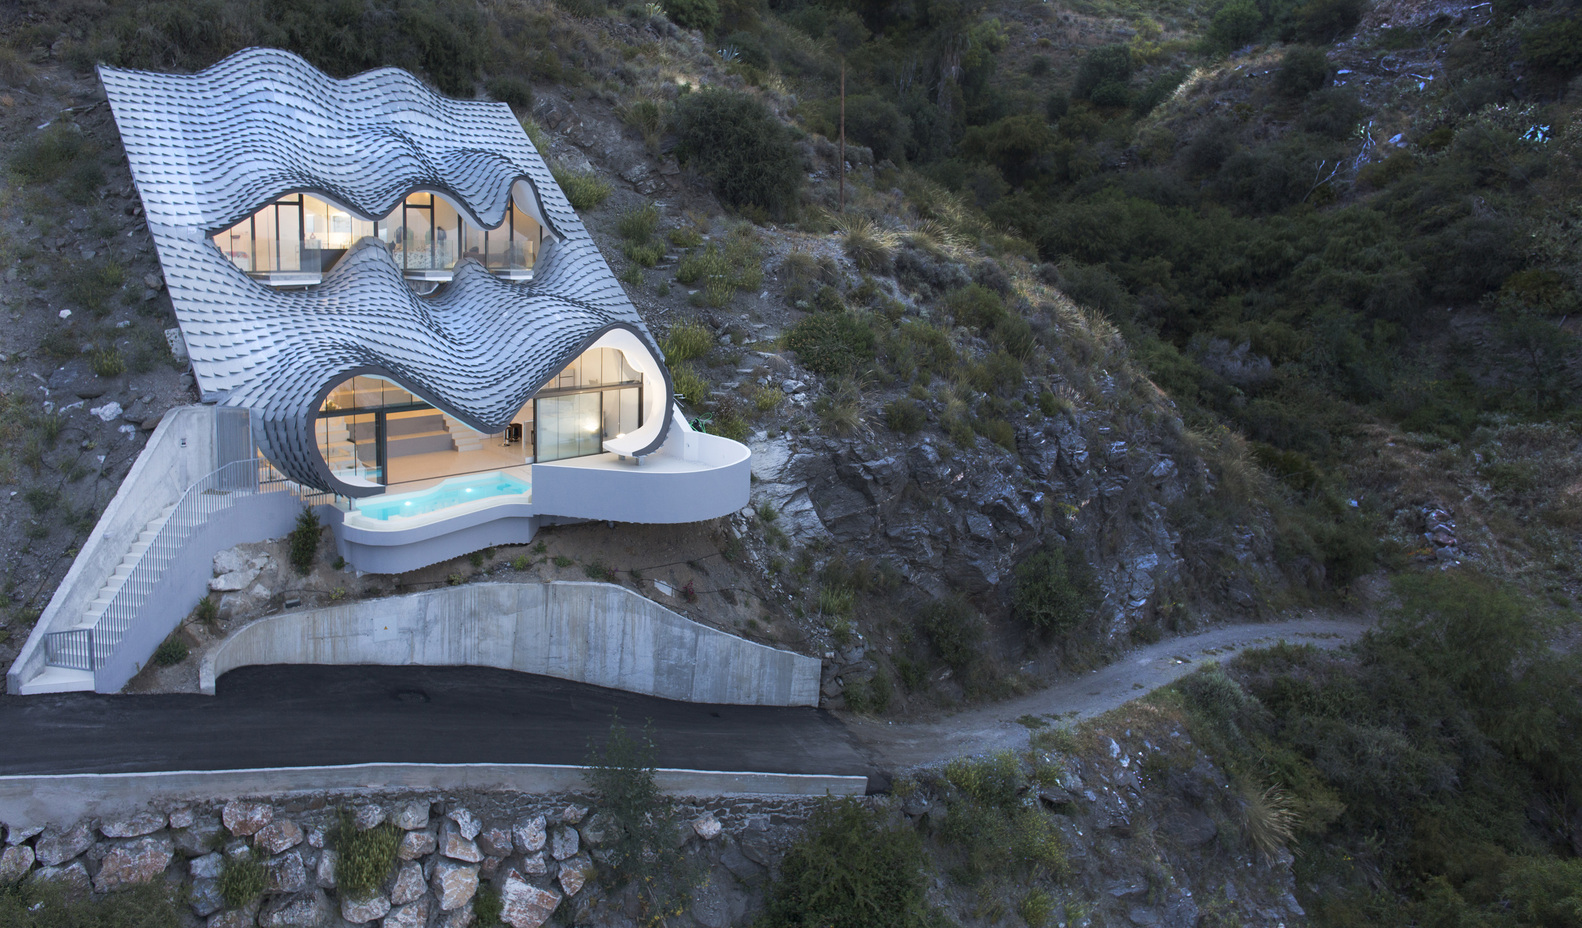 Cliffside House in Spain Inspired by Artist Gaudí